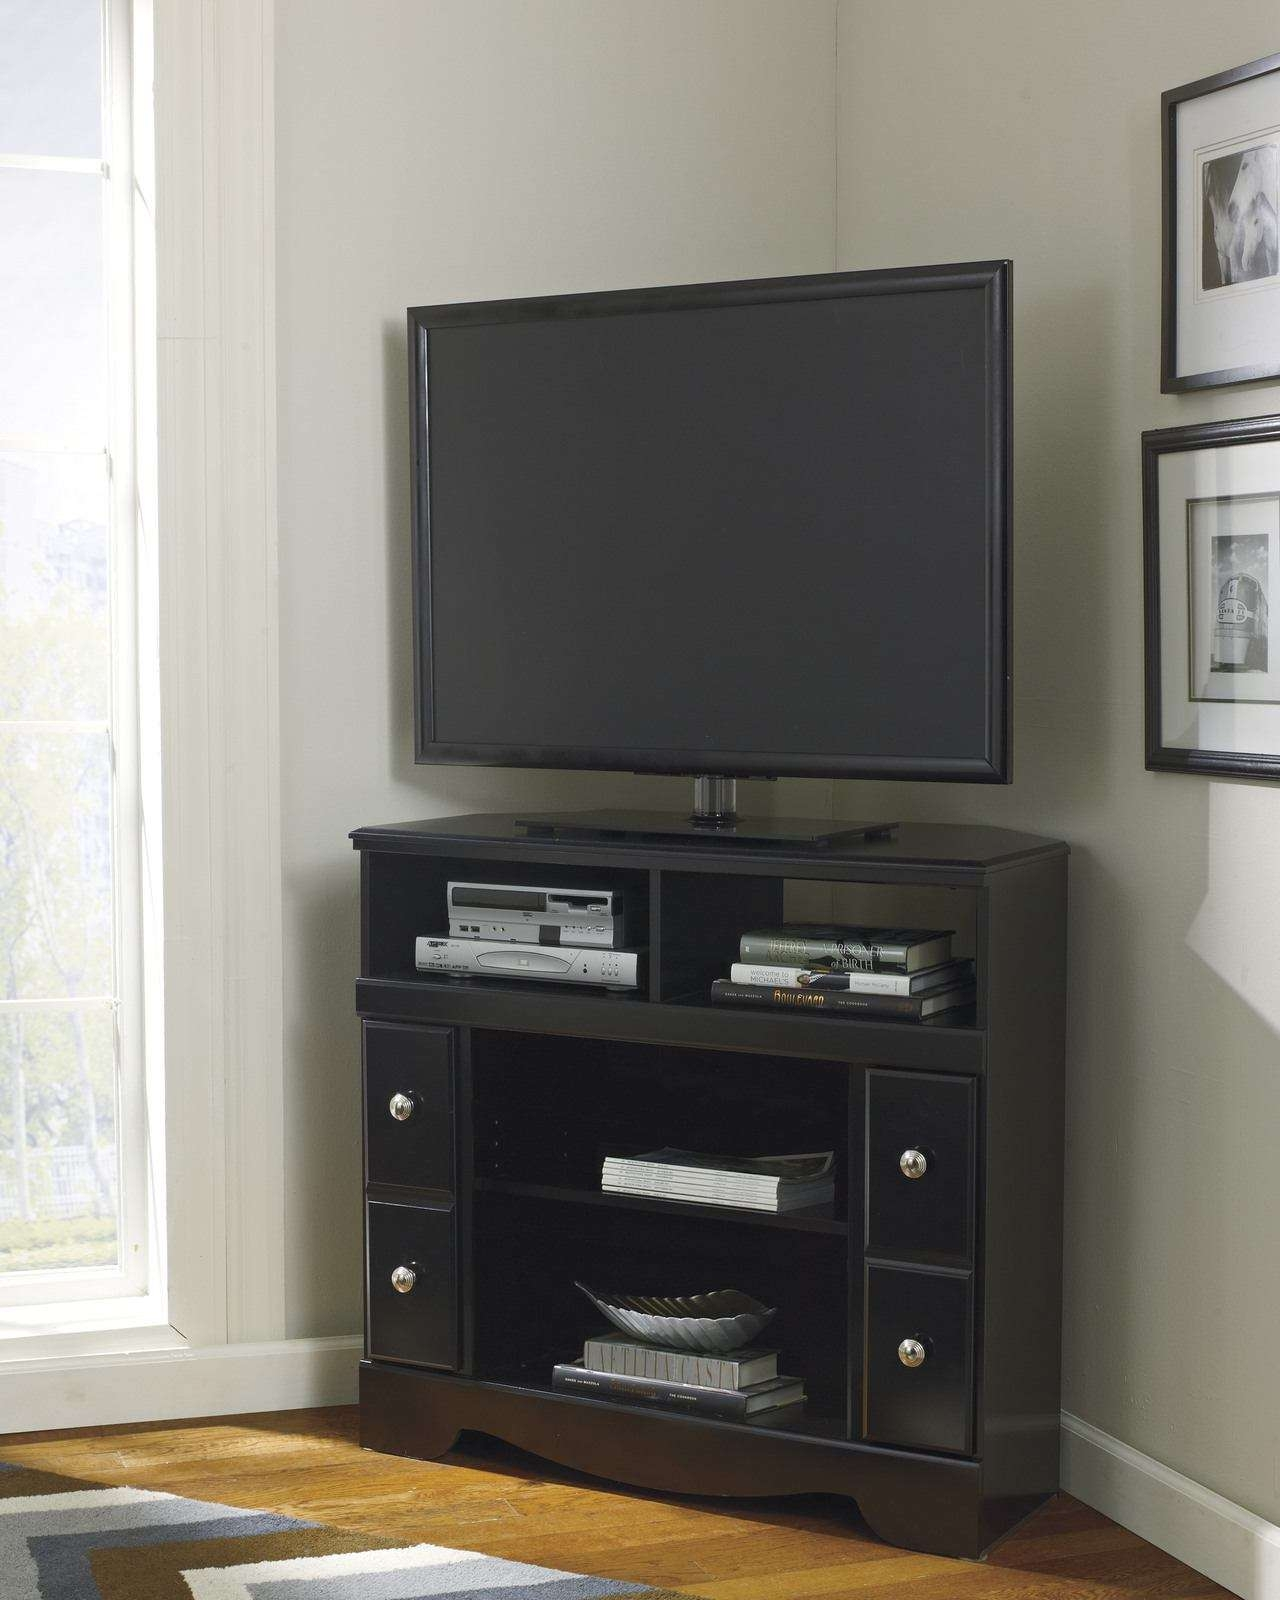 Corner Tv Stand With Fireplace Option In Black W271 12 In Cornet Tv Stands (View 3 of 15)